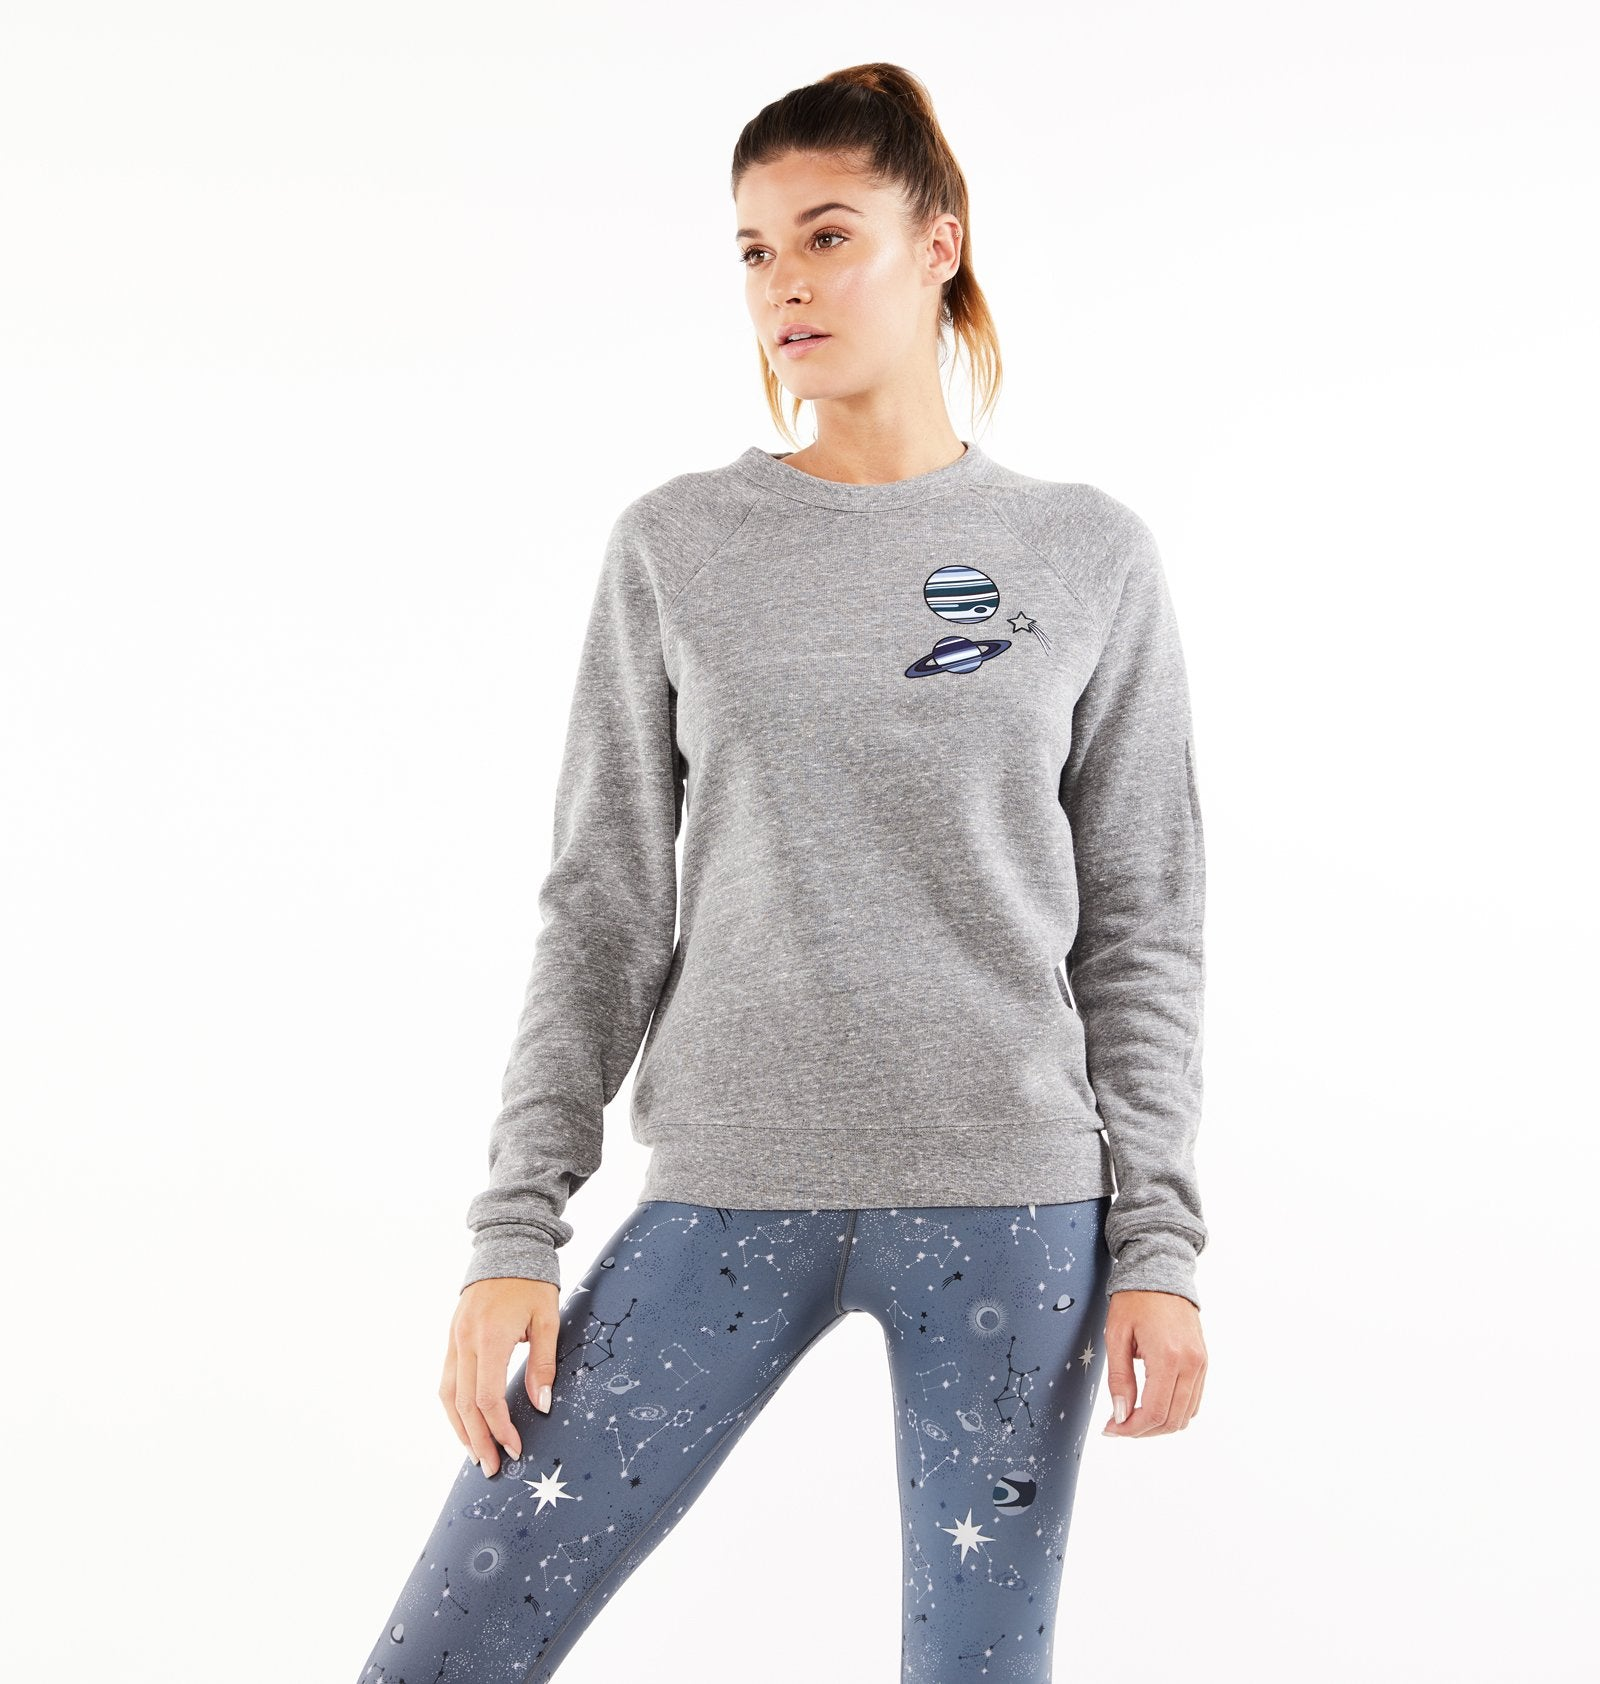 ULTRACOR - BOYFRIEND GALAXY SWEATSHIRT